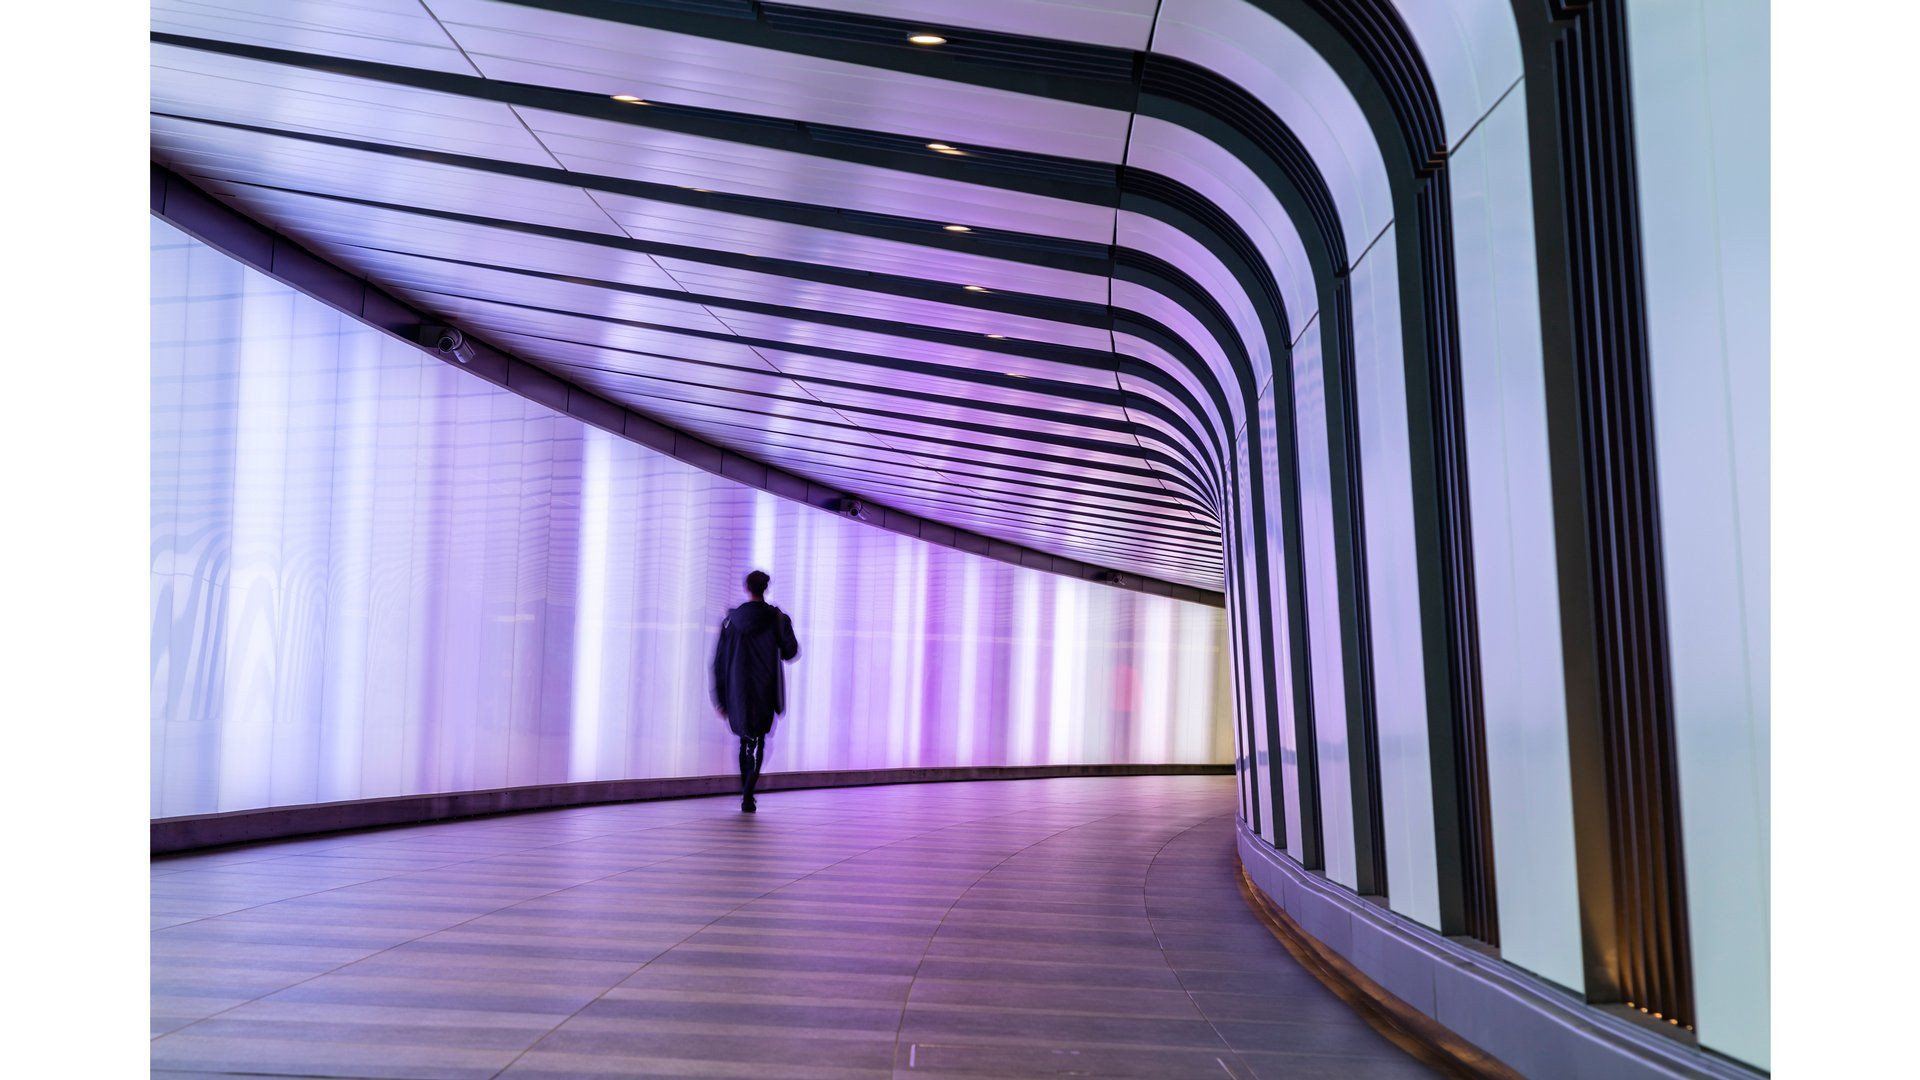 A person walks through a wide white and black tunnel with a purple light.